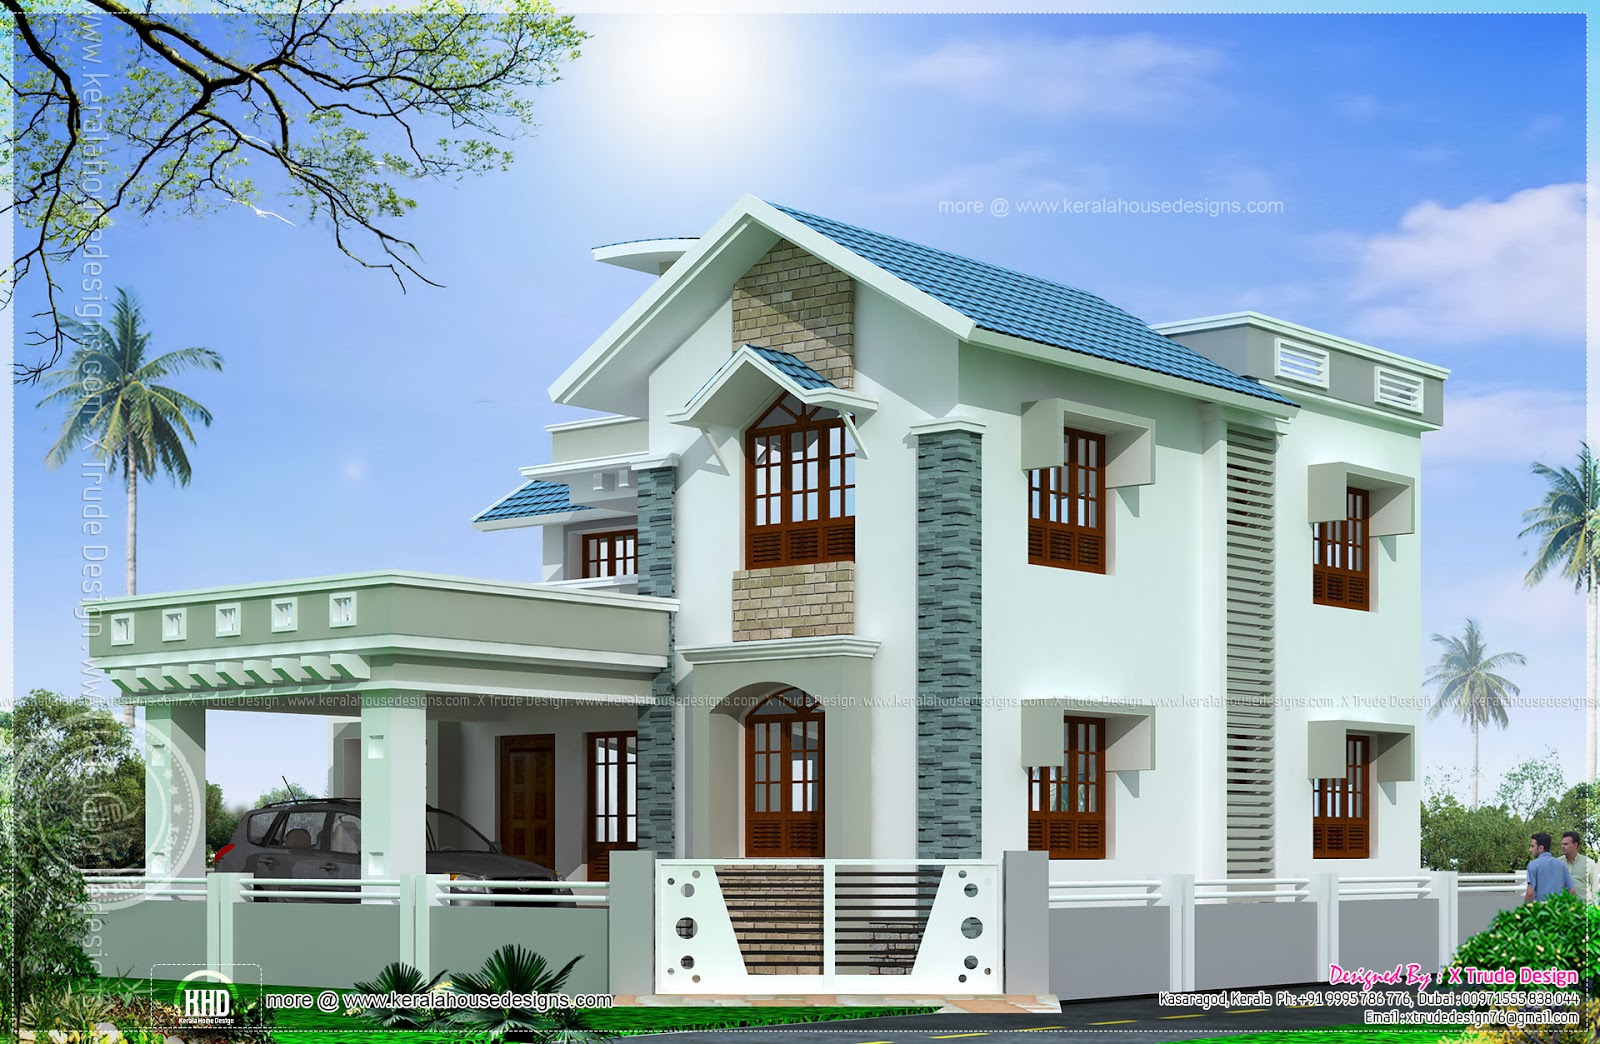 Modern home designs beautiful 2138 square feet house for Stylish house designs